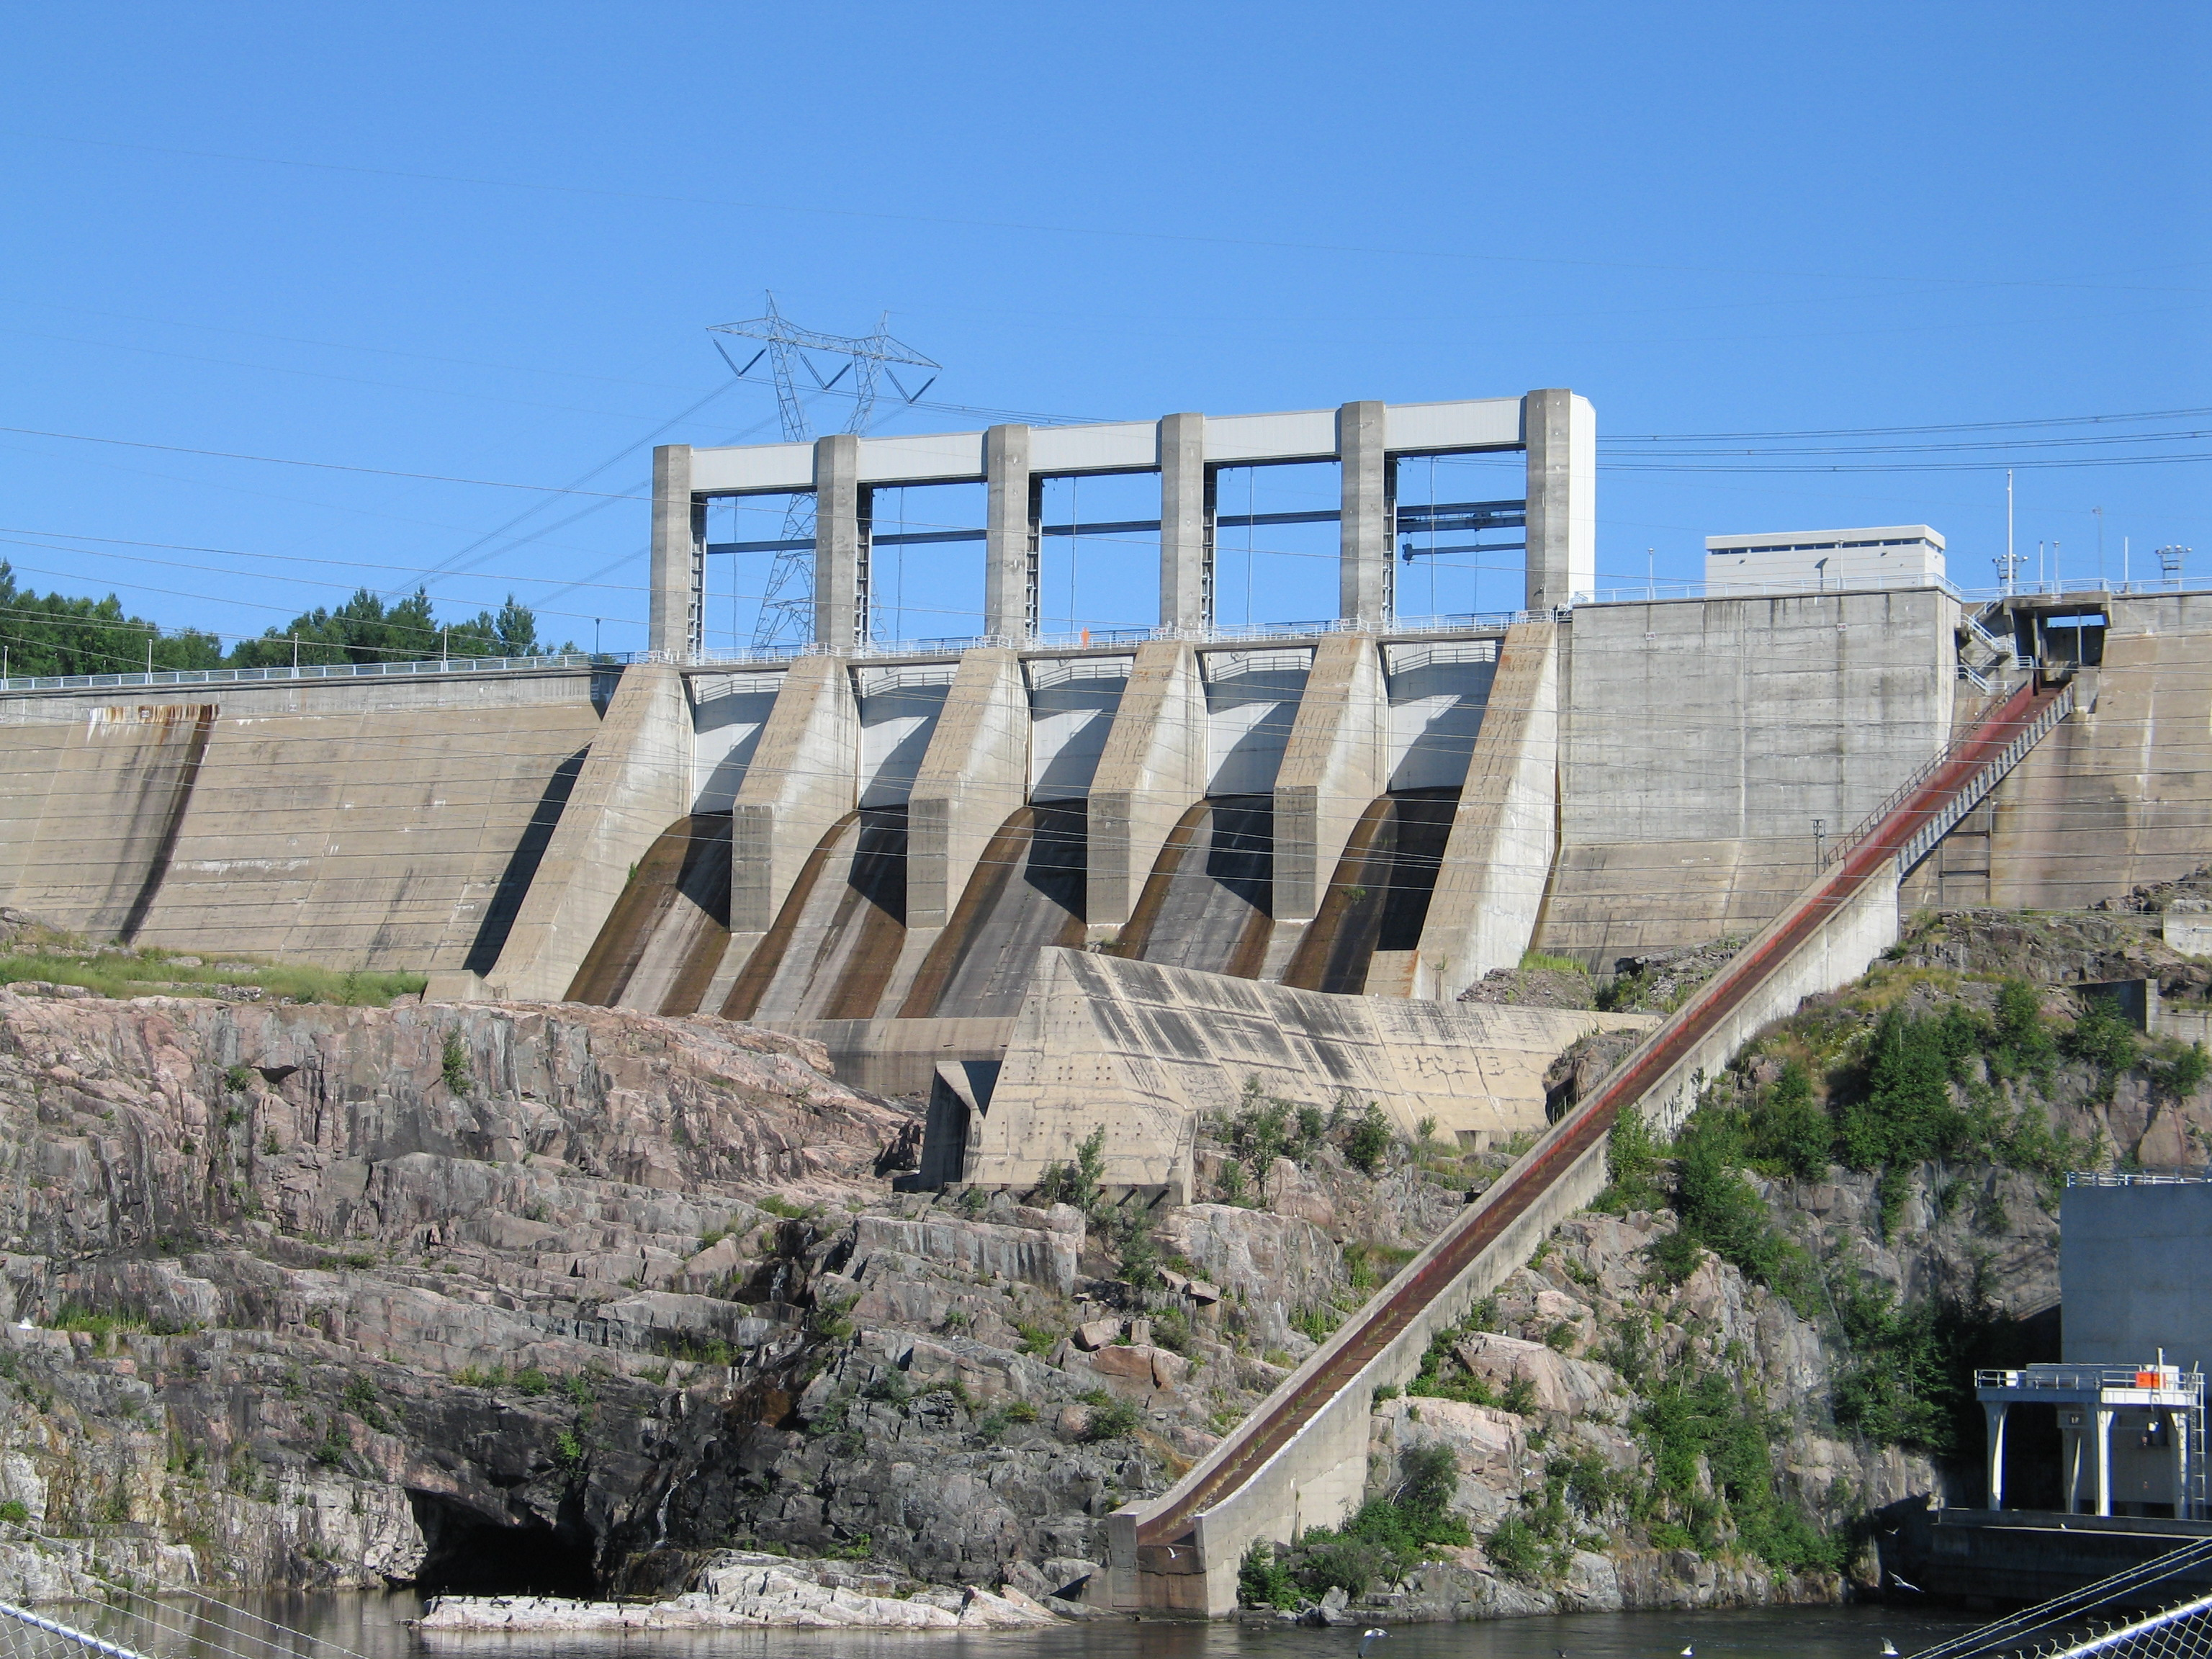 A concrete generating station sits above a river.